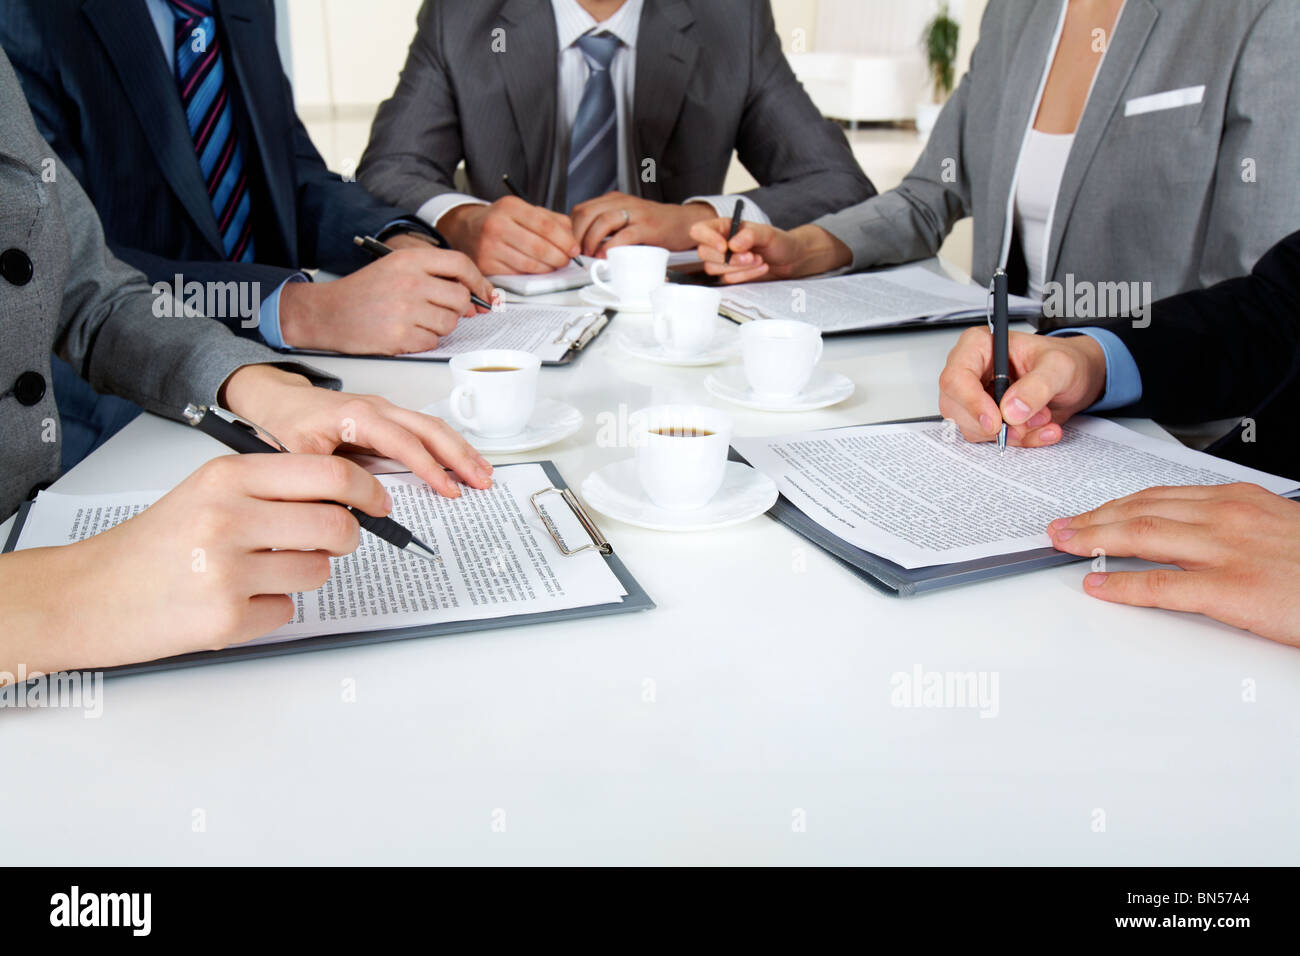 Image of business people hands with ballpoints writing on papers while planning work - Stock Image